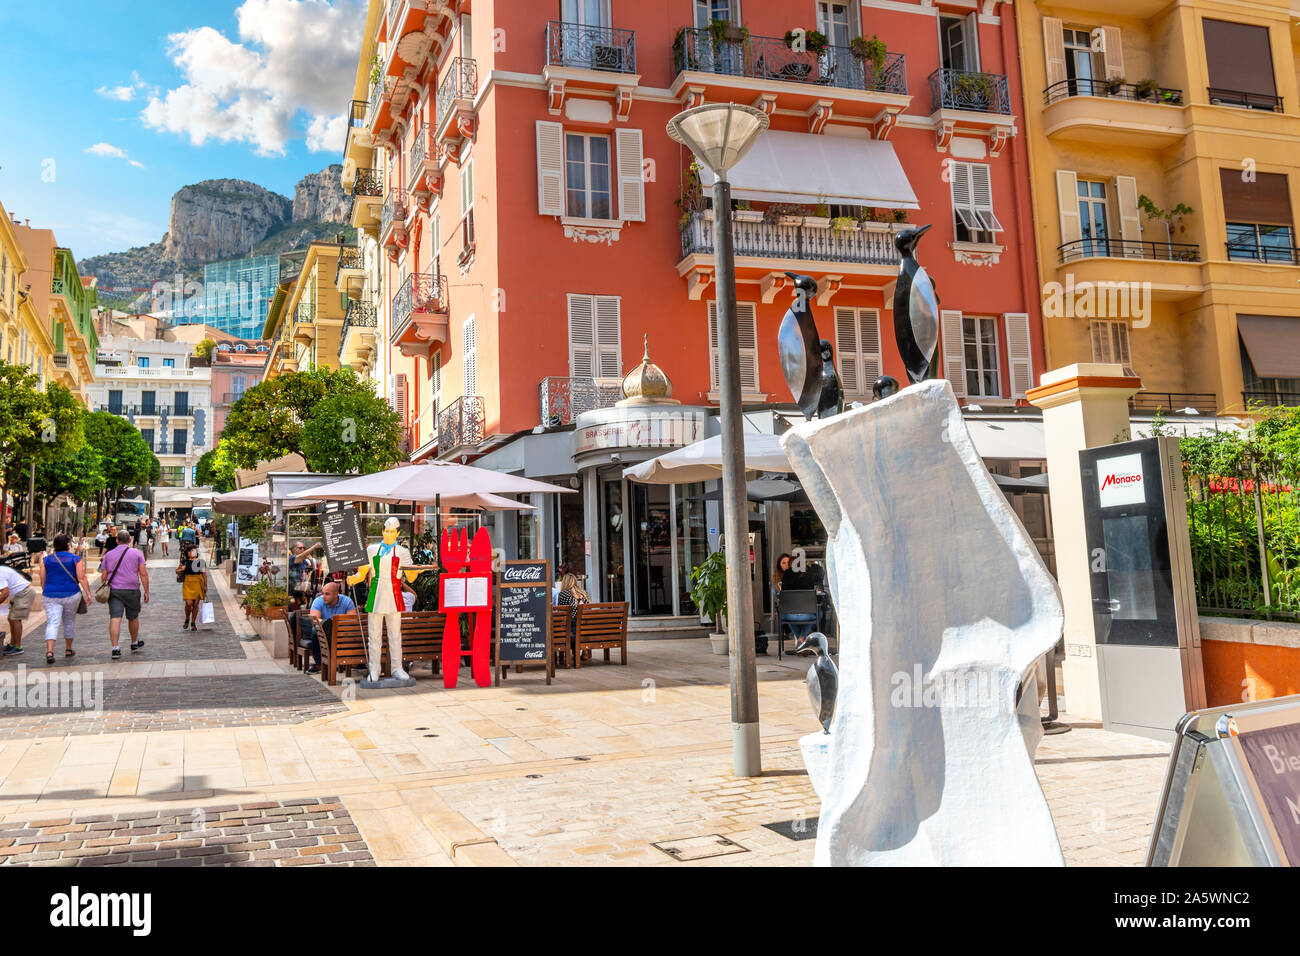 Tourists and local Monegasque enjoy a sunny summer day shopping and dining in Monte Carlo, Monaco, with the steep mountains in the distance. Stock Photo